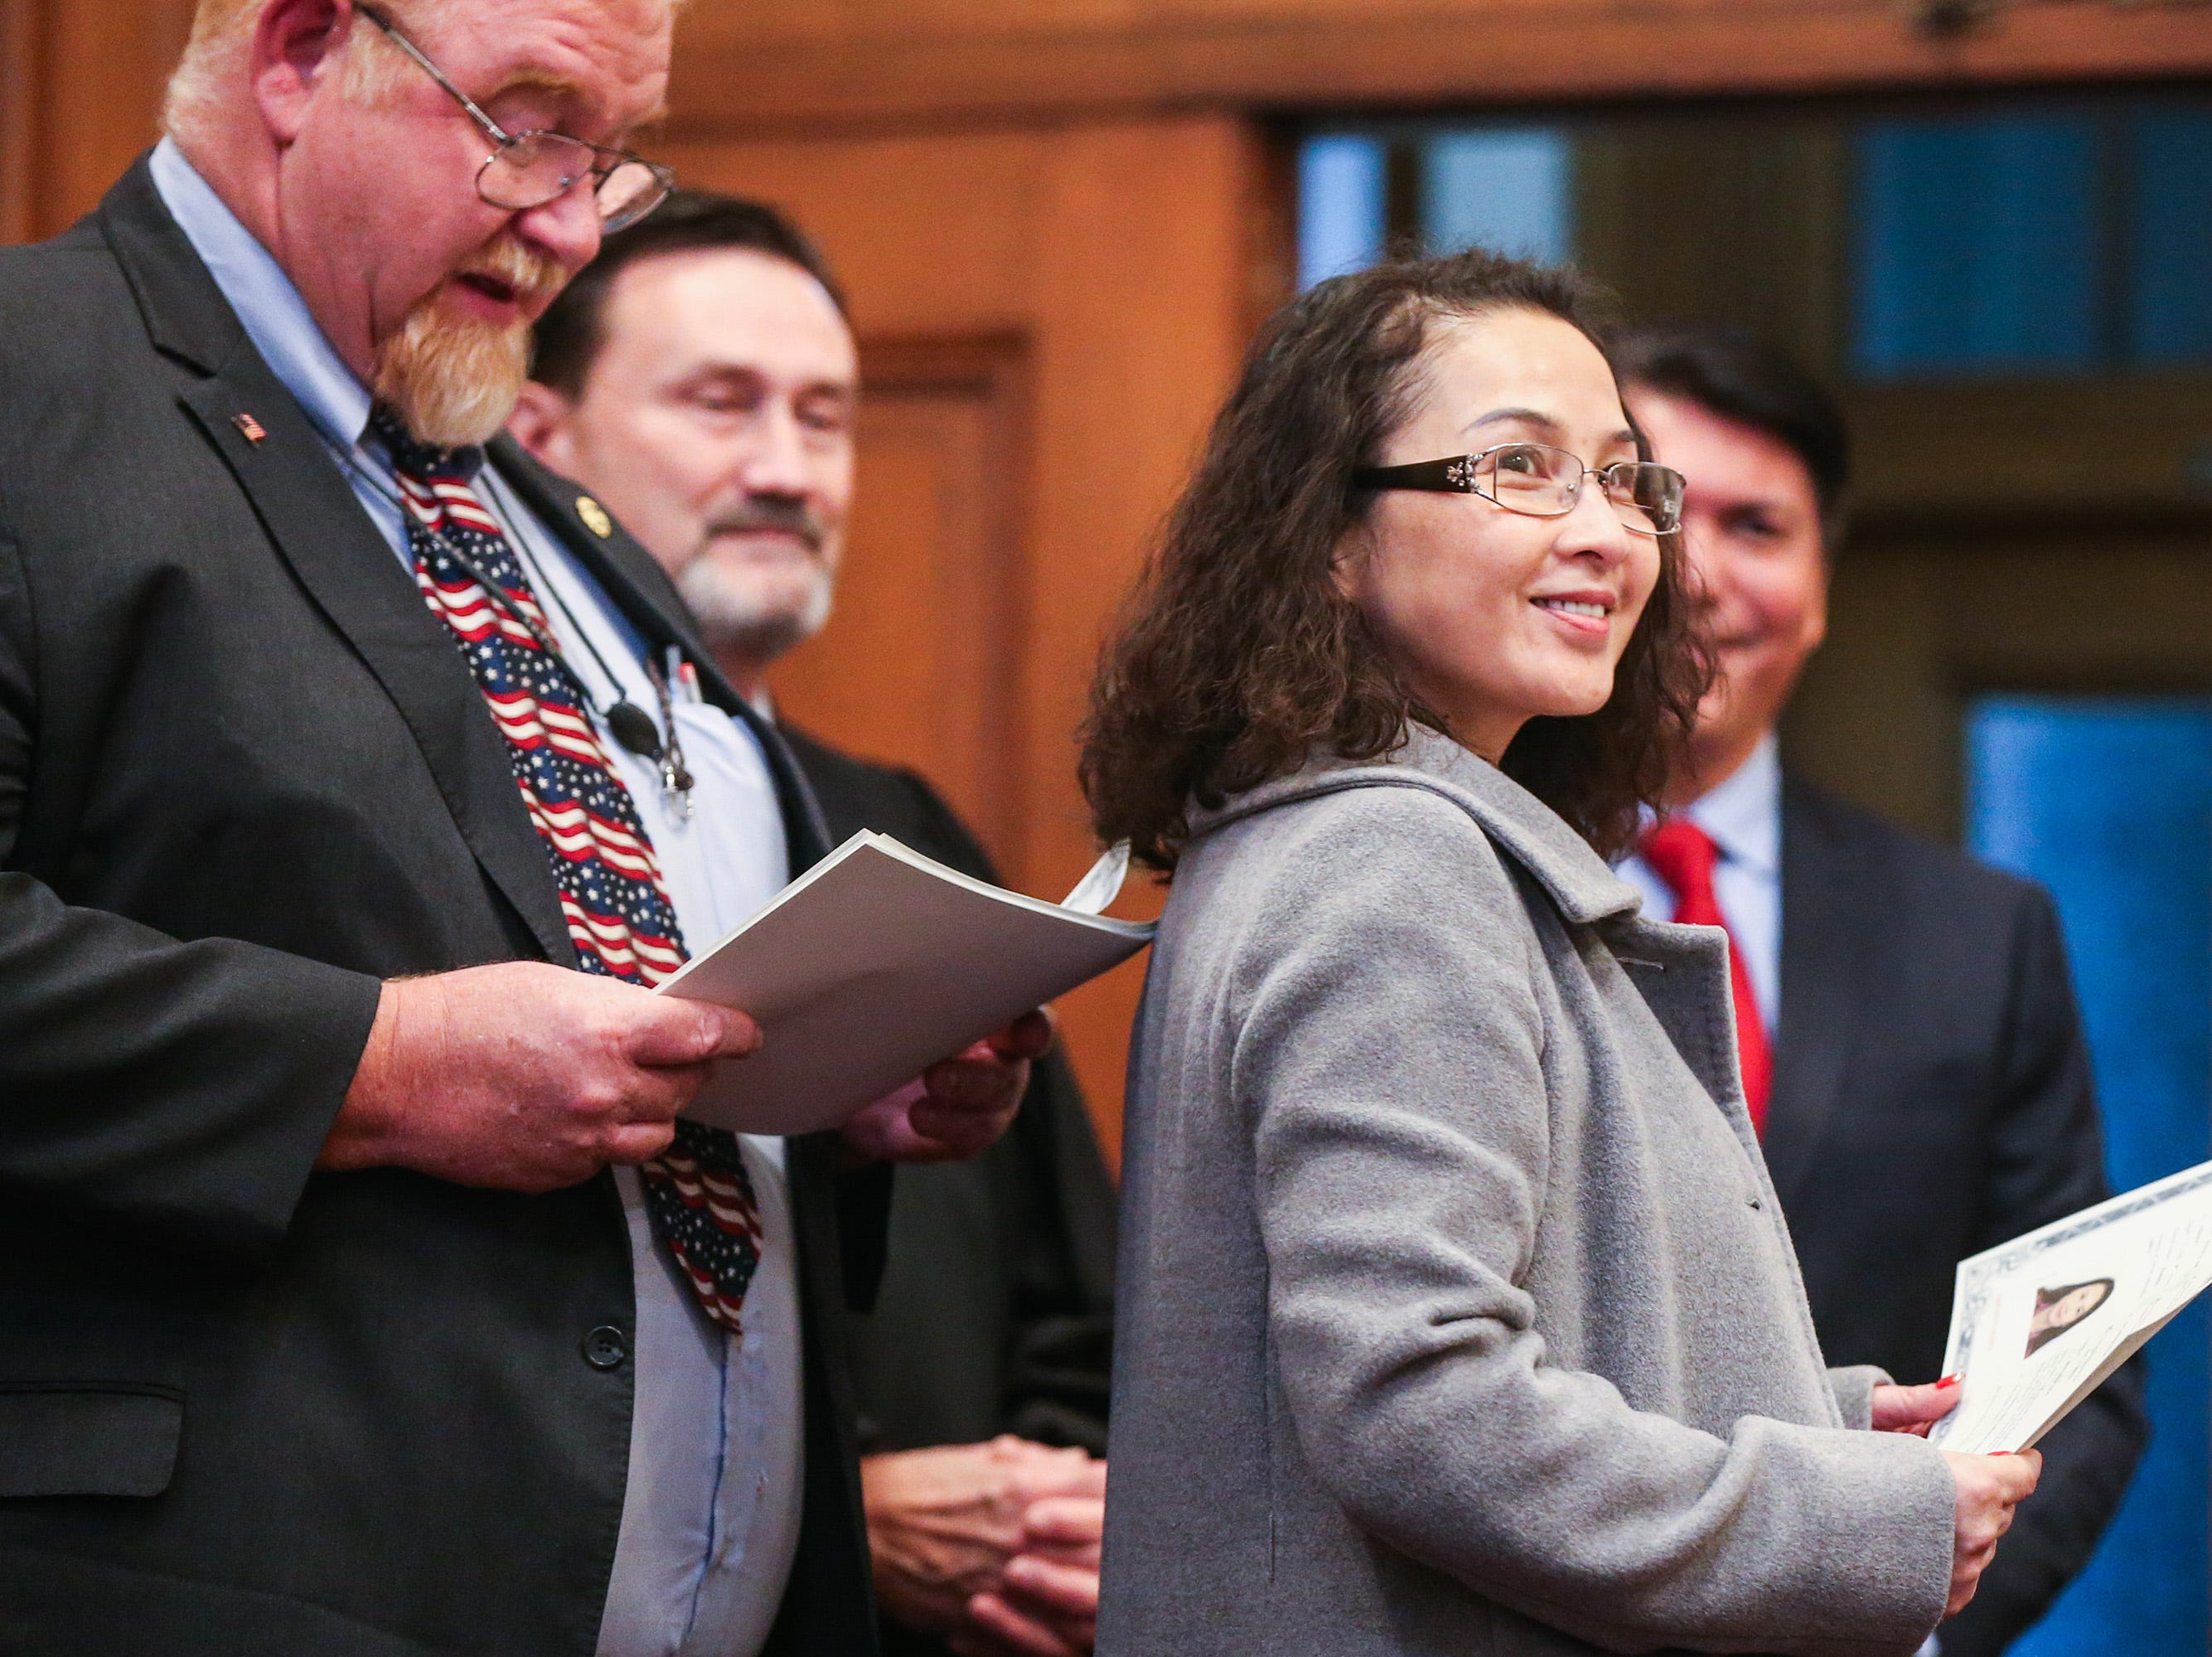 Ying Lv Newton receives her certificate during the naturalization ceremony Wednesday, Jan. 8, 2019, at the O.C. Fisher Federal Building.